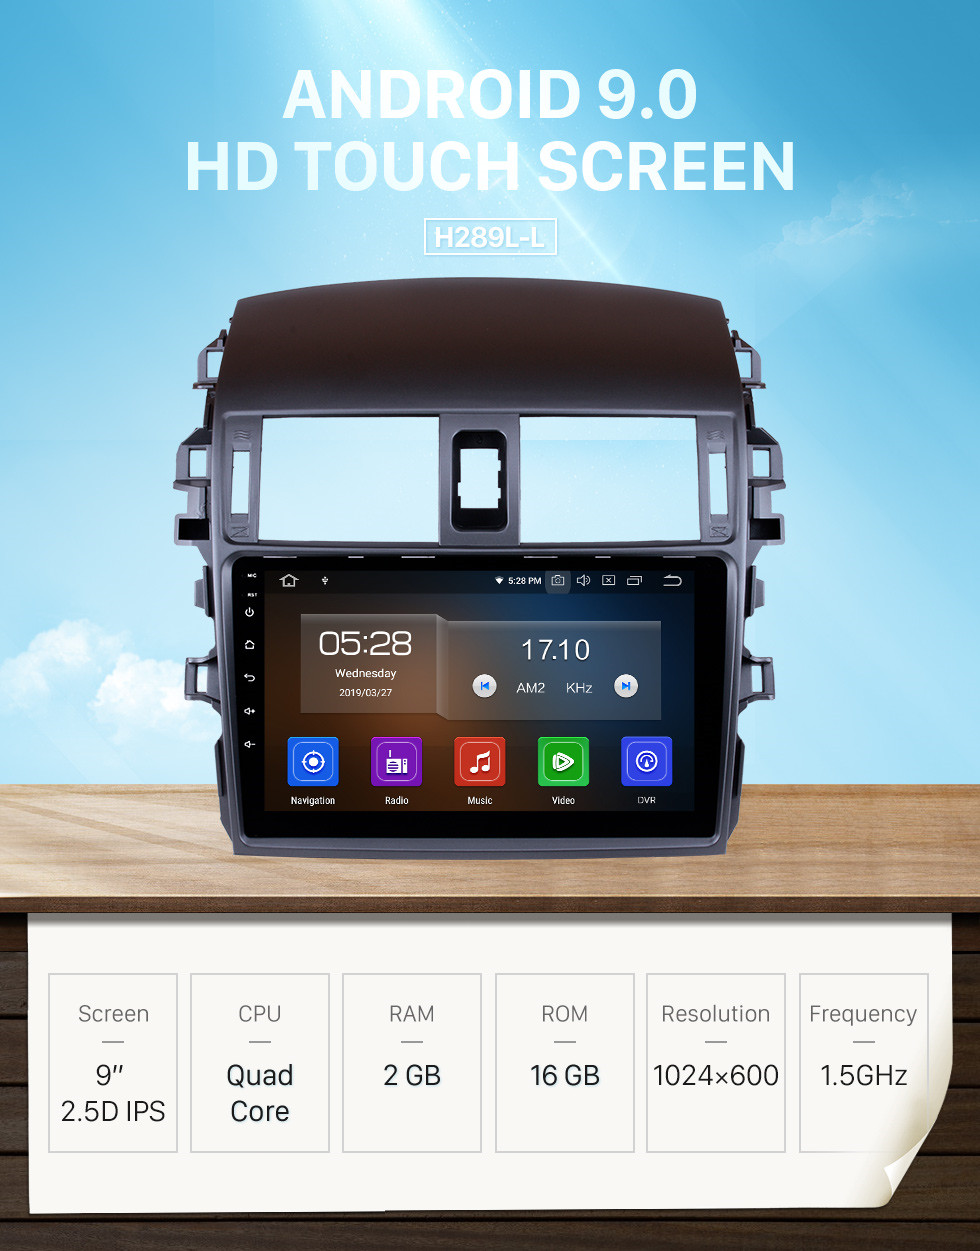 Seicane 9 Inch 2008-2010 Toyota Corolla Android 9.0 Capacitive Touch Screen Radio GPS Navigation system with Bluetooth TPMS DVR OBD II Rear camera AUX USB SD 3G WiFi Steering Wheel Control Video